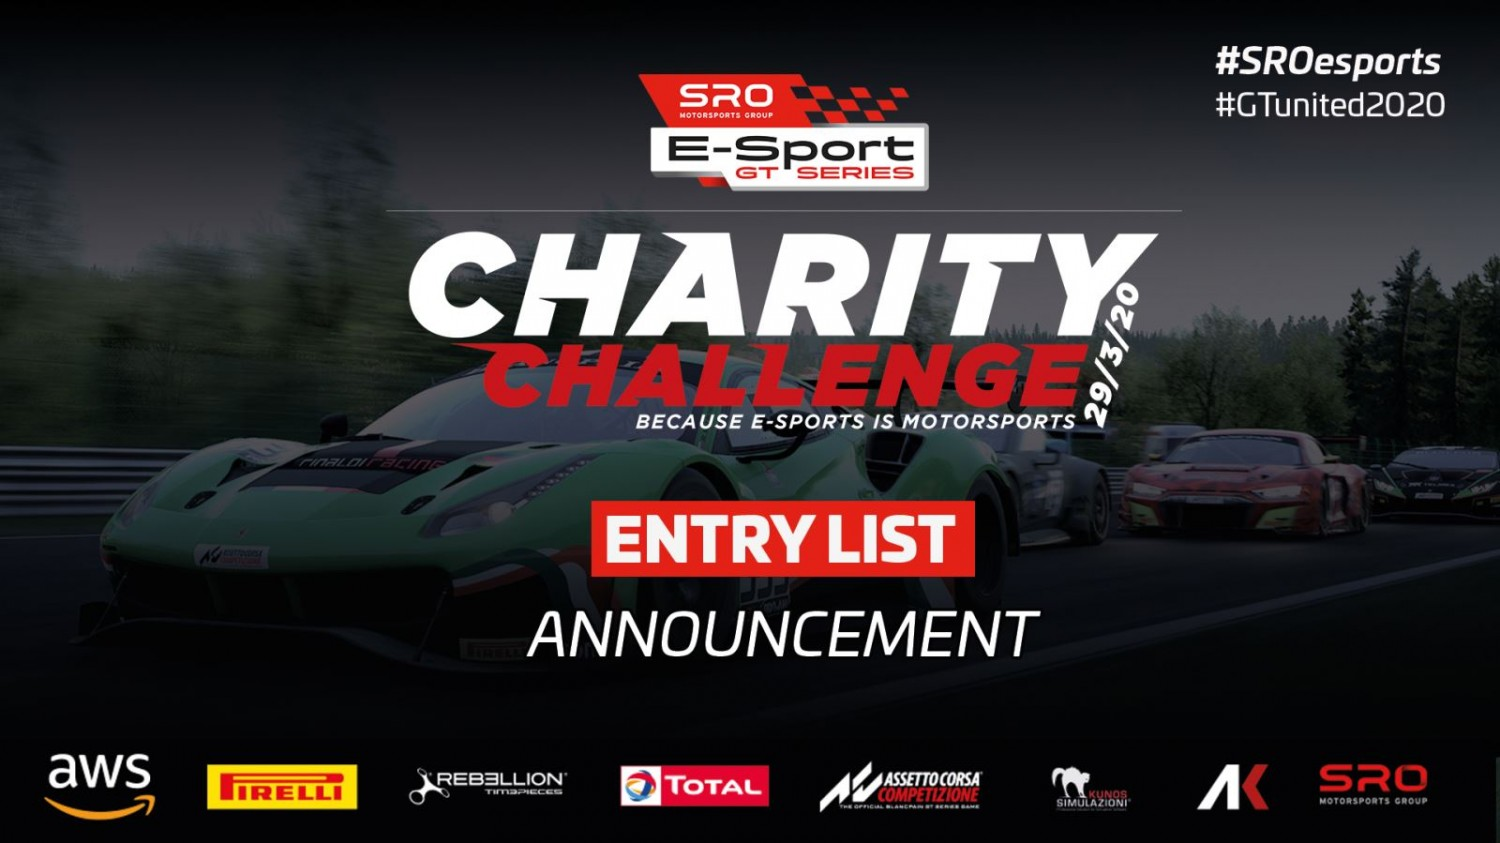 Virtual GT racing takes centre stage at Monza for SRO E-Sport GT Series Charity Challenge